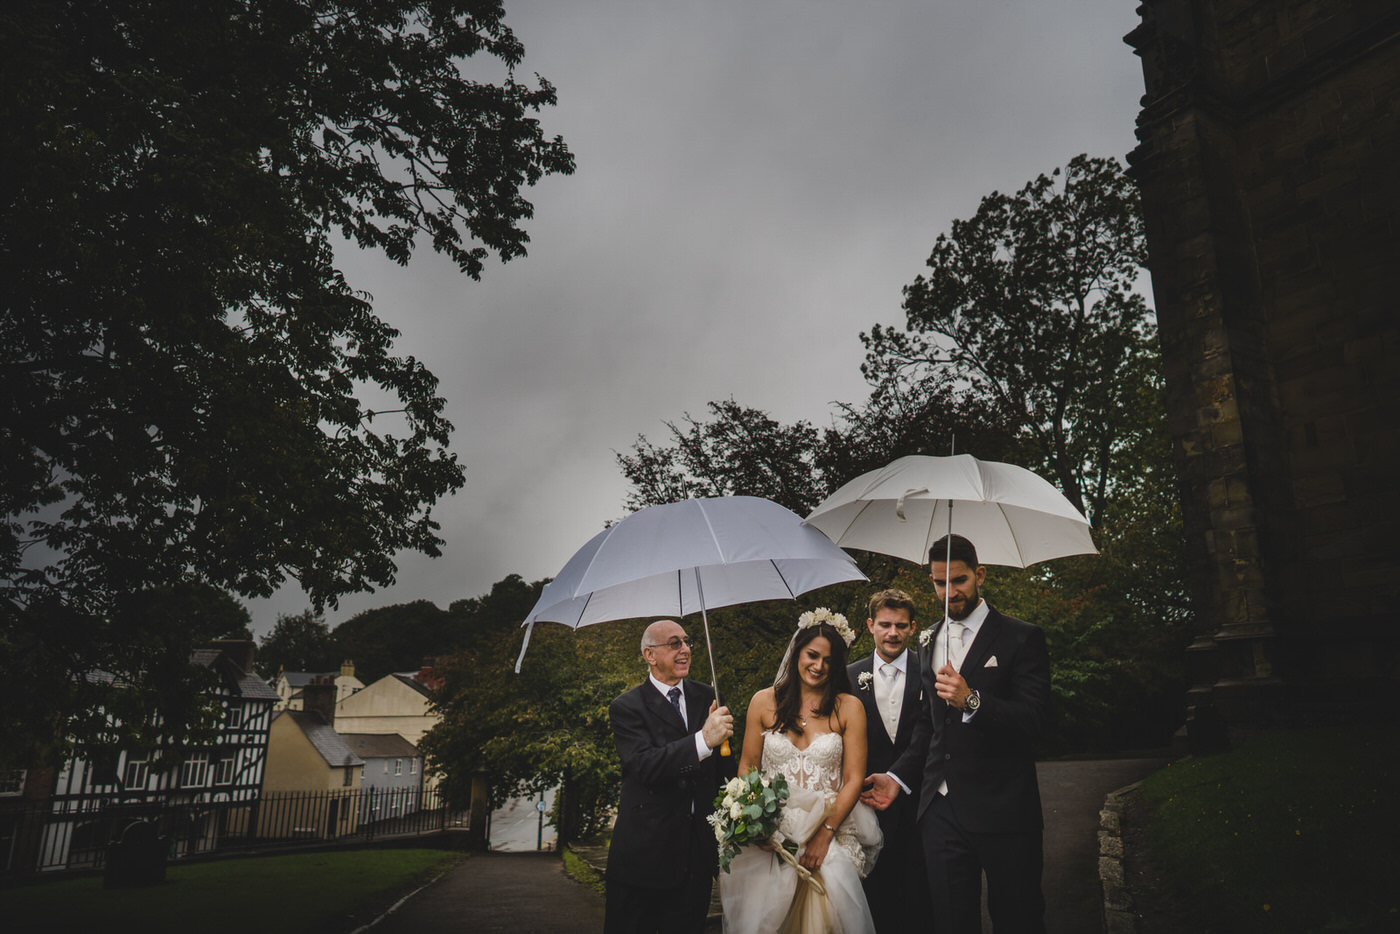 The bride makes her way to the Church while being protected from the rain with umbrellas